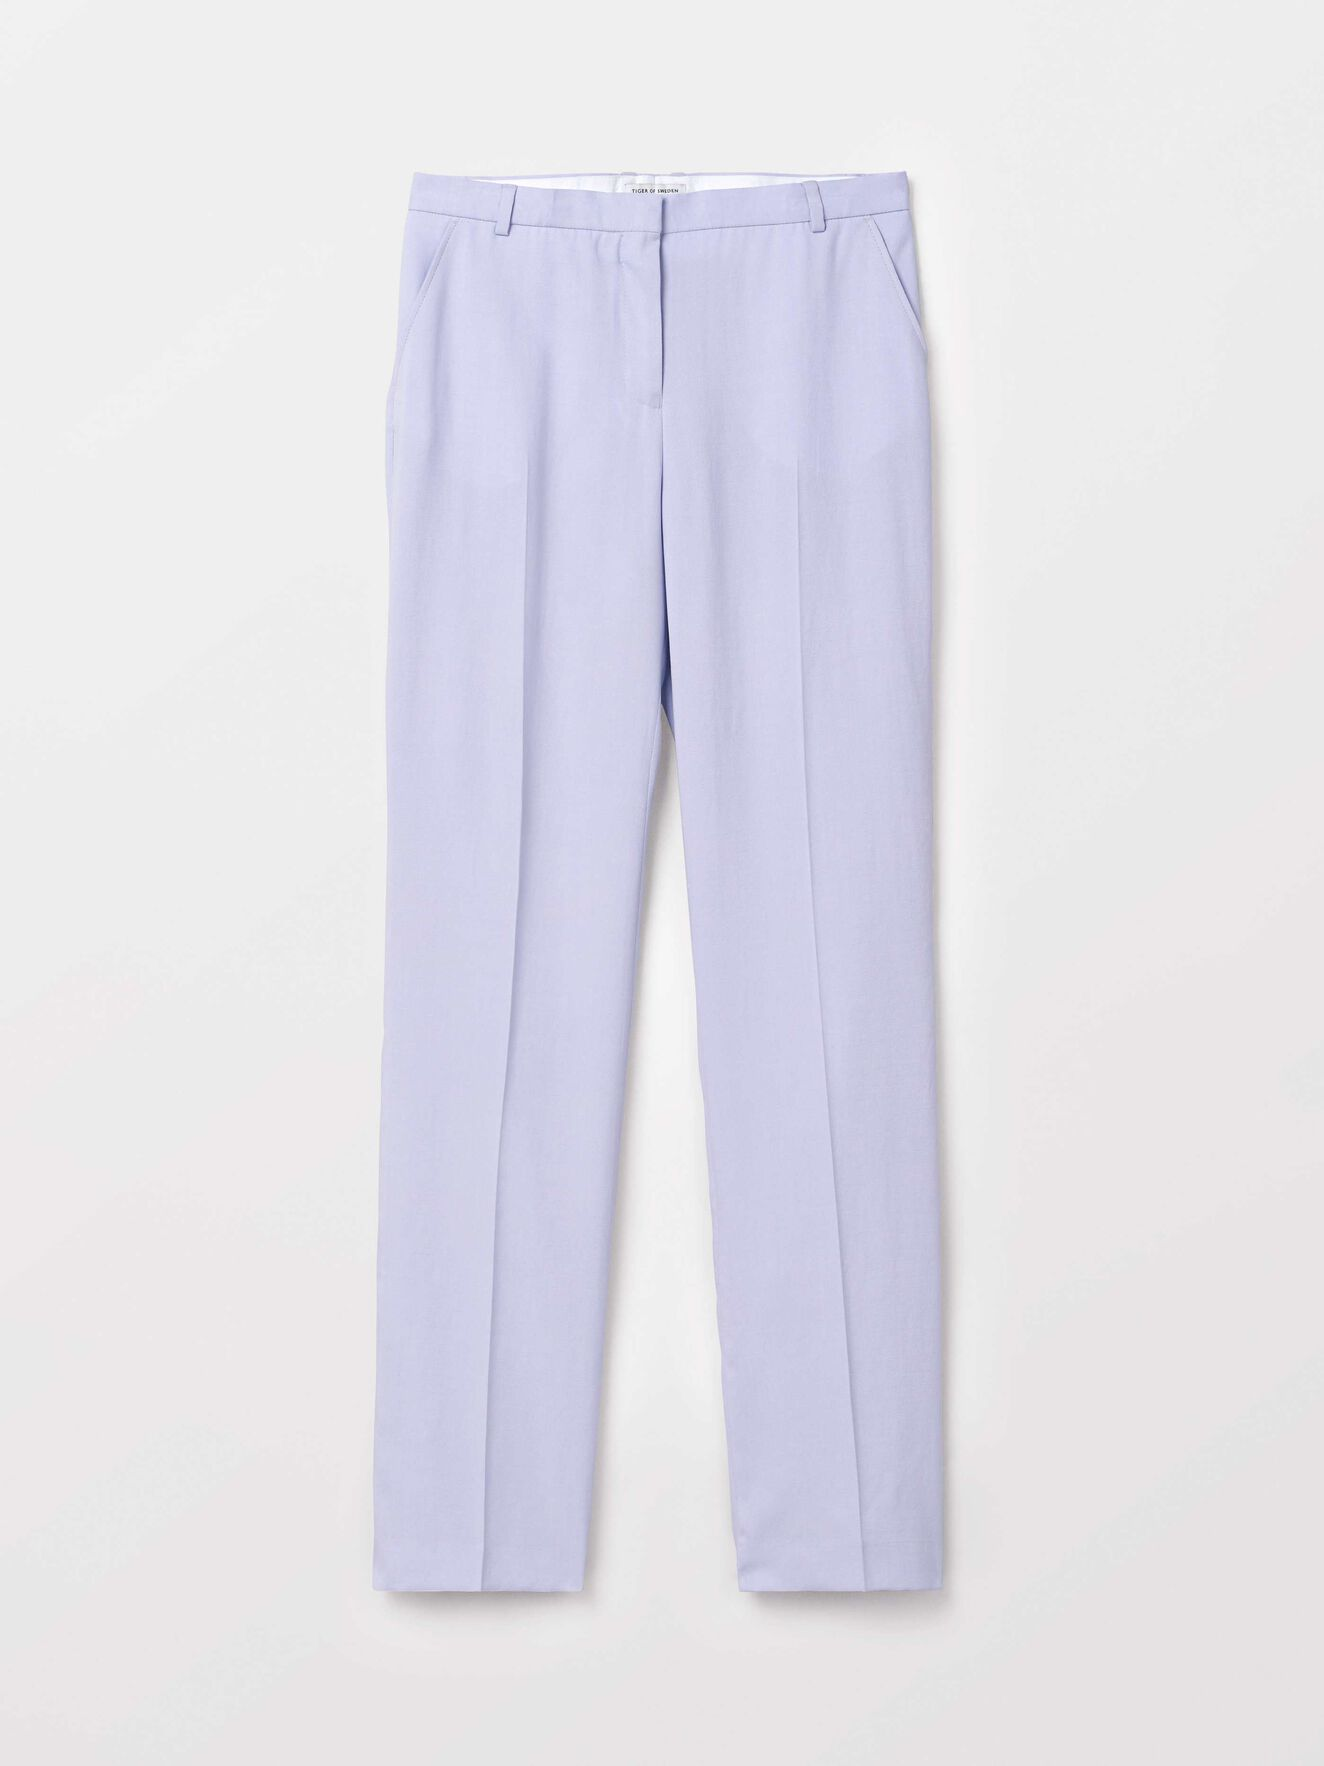 Yulia 6 Trousers in Soft Lavender from Tiger of Sweden